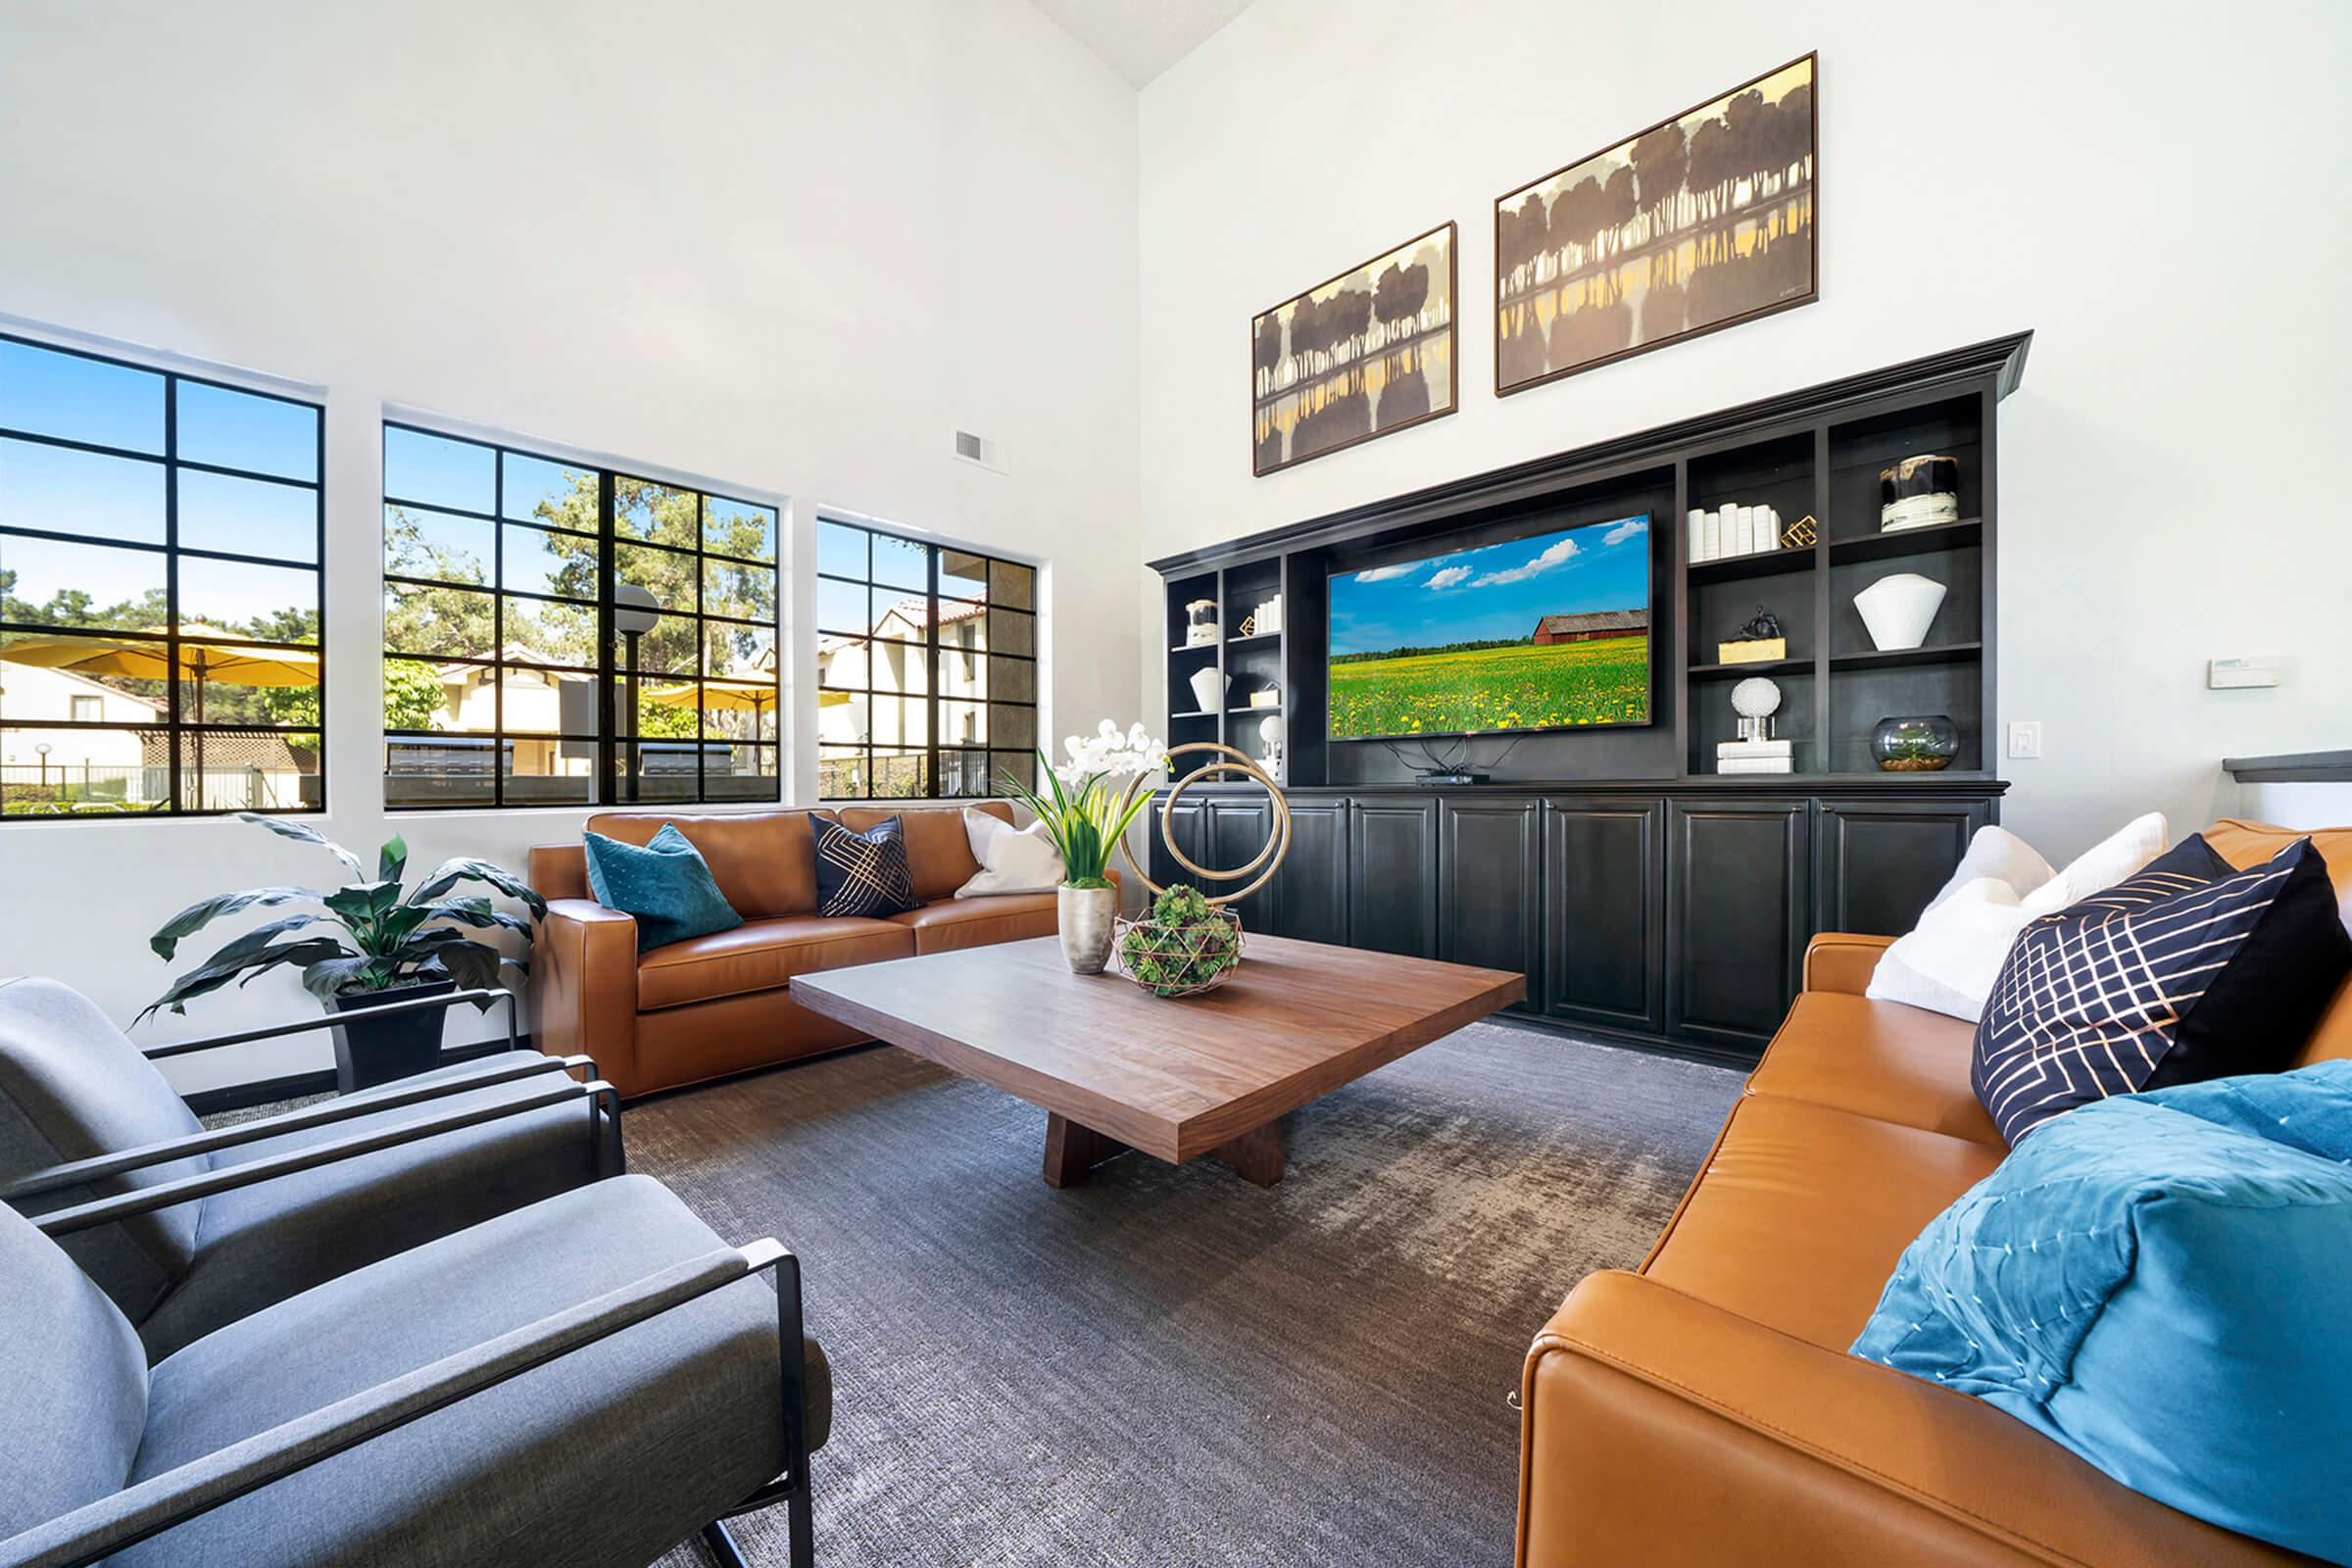 Villa La Paz Apartment Homes community room with couches and a TV